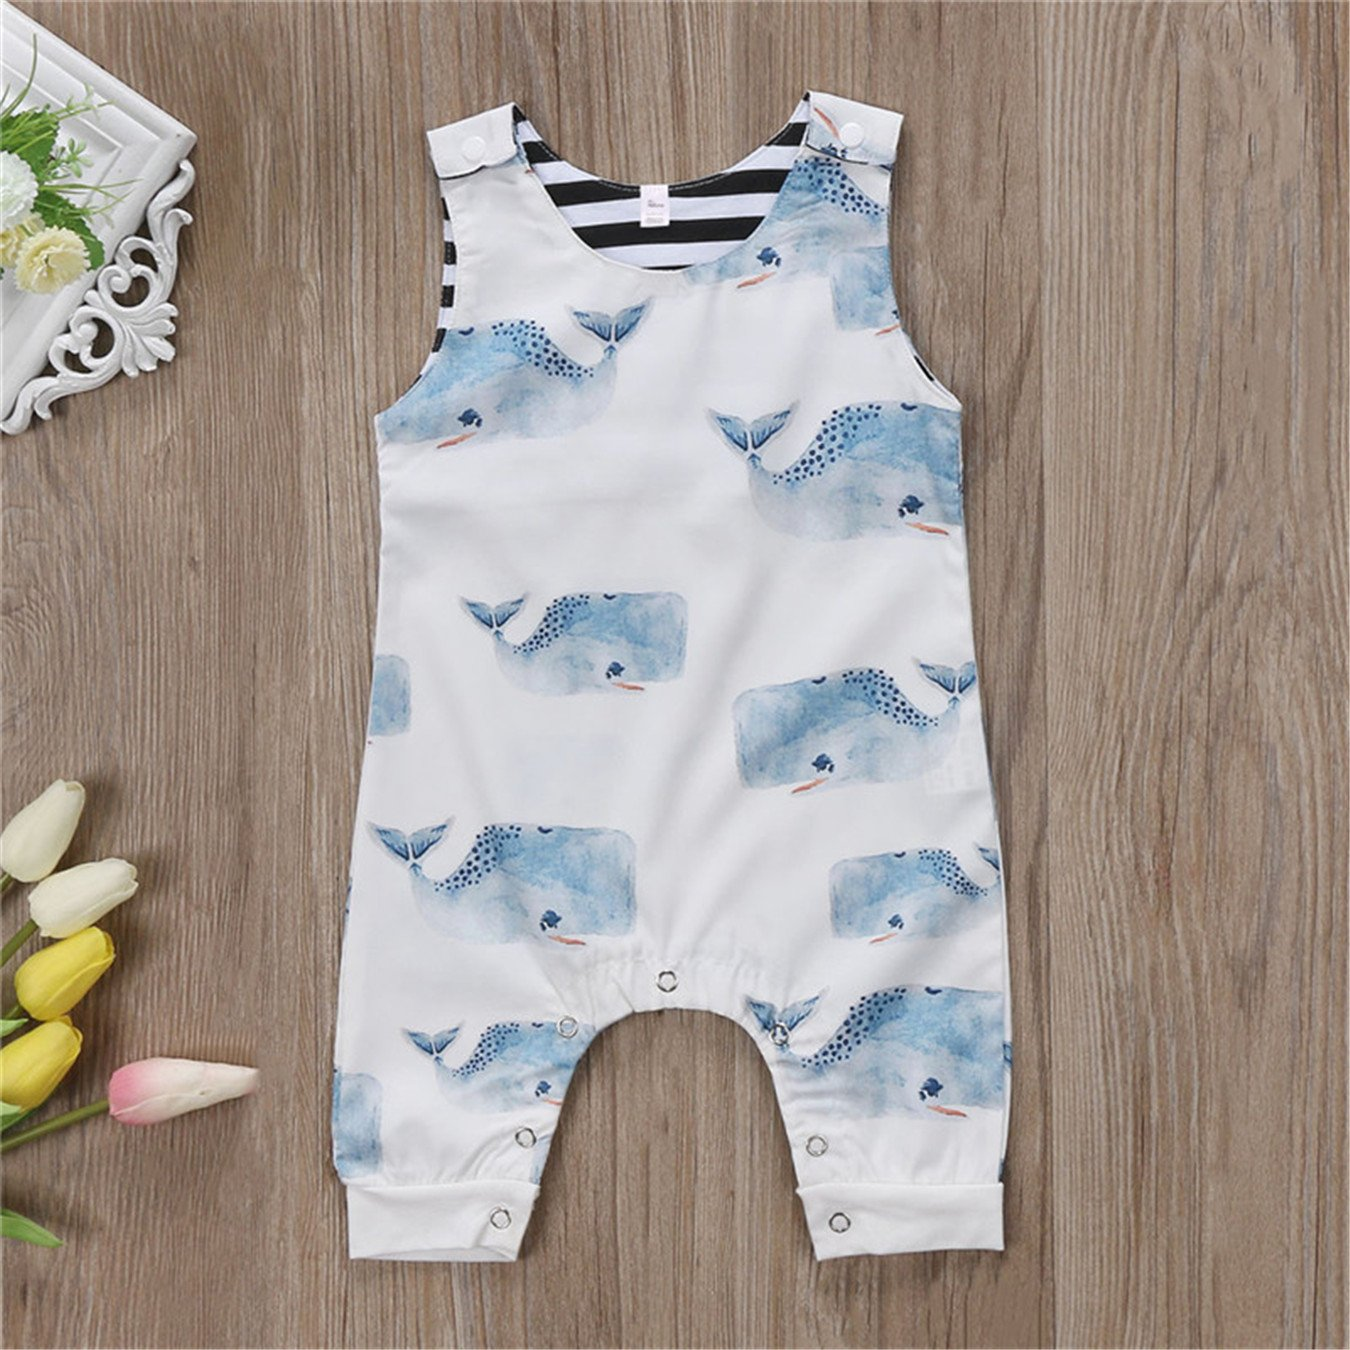 Newborn Baby Boys Girls Romper Sleeveless Summer Whale Jumpsuit Playsuit Outfits Boy Girl Rompers Round Neck